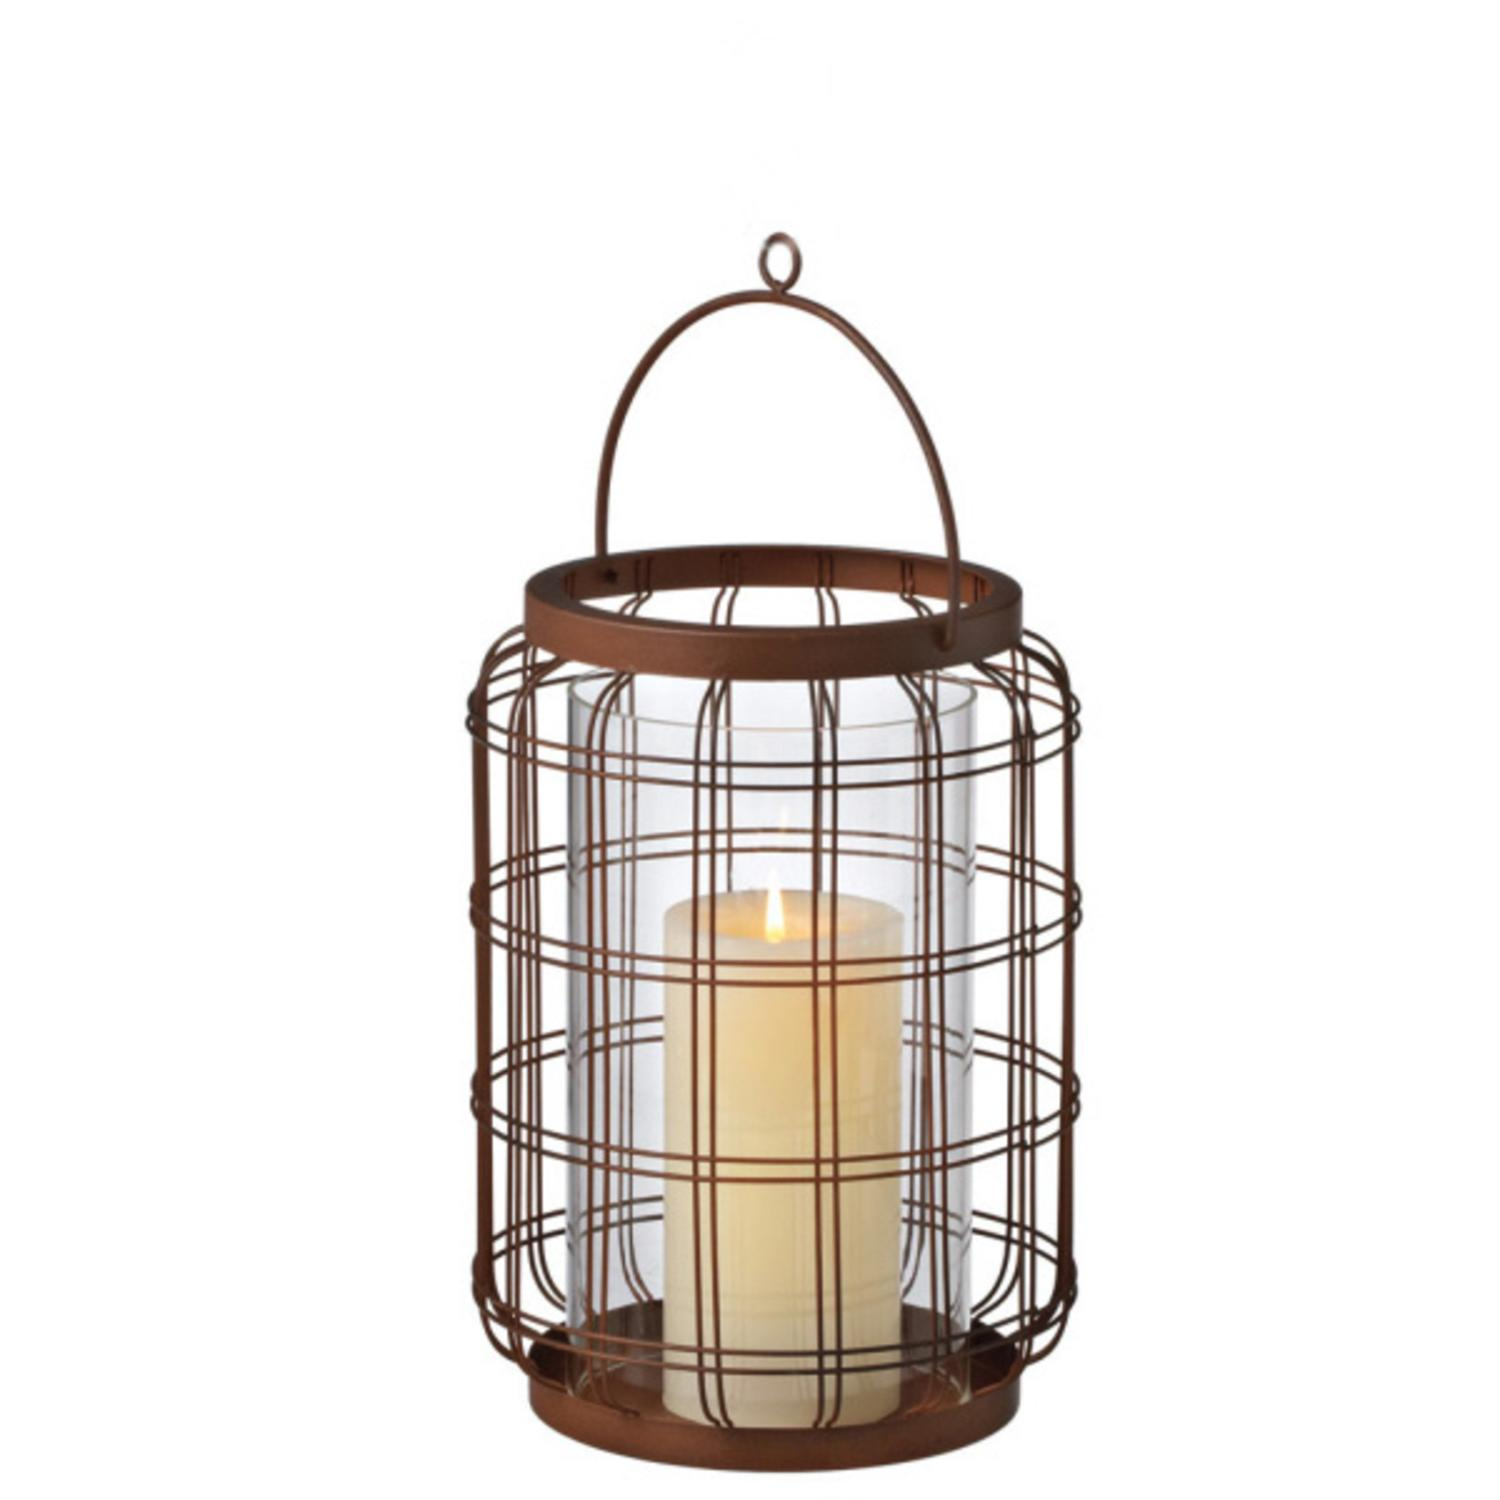 """9.75"""" Rustic Style Open Wire Weave Pillar Candle Holder Lantern"""